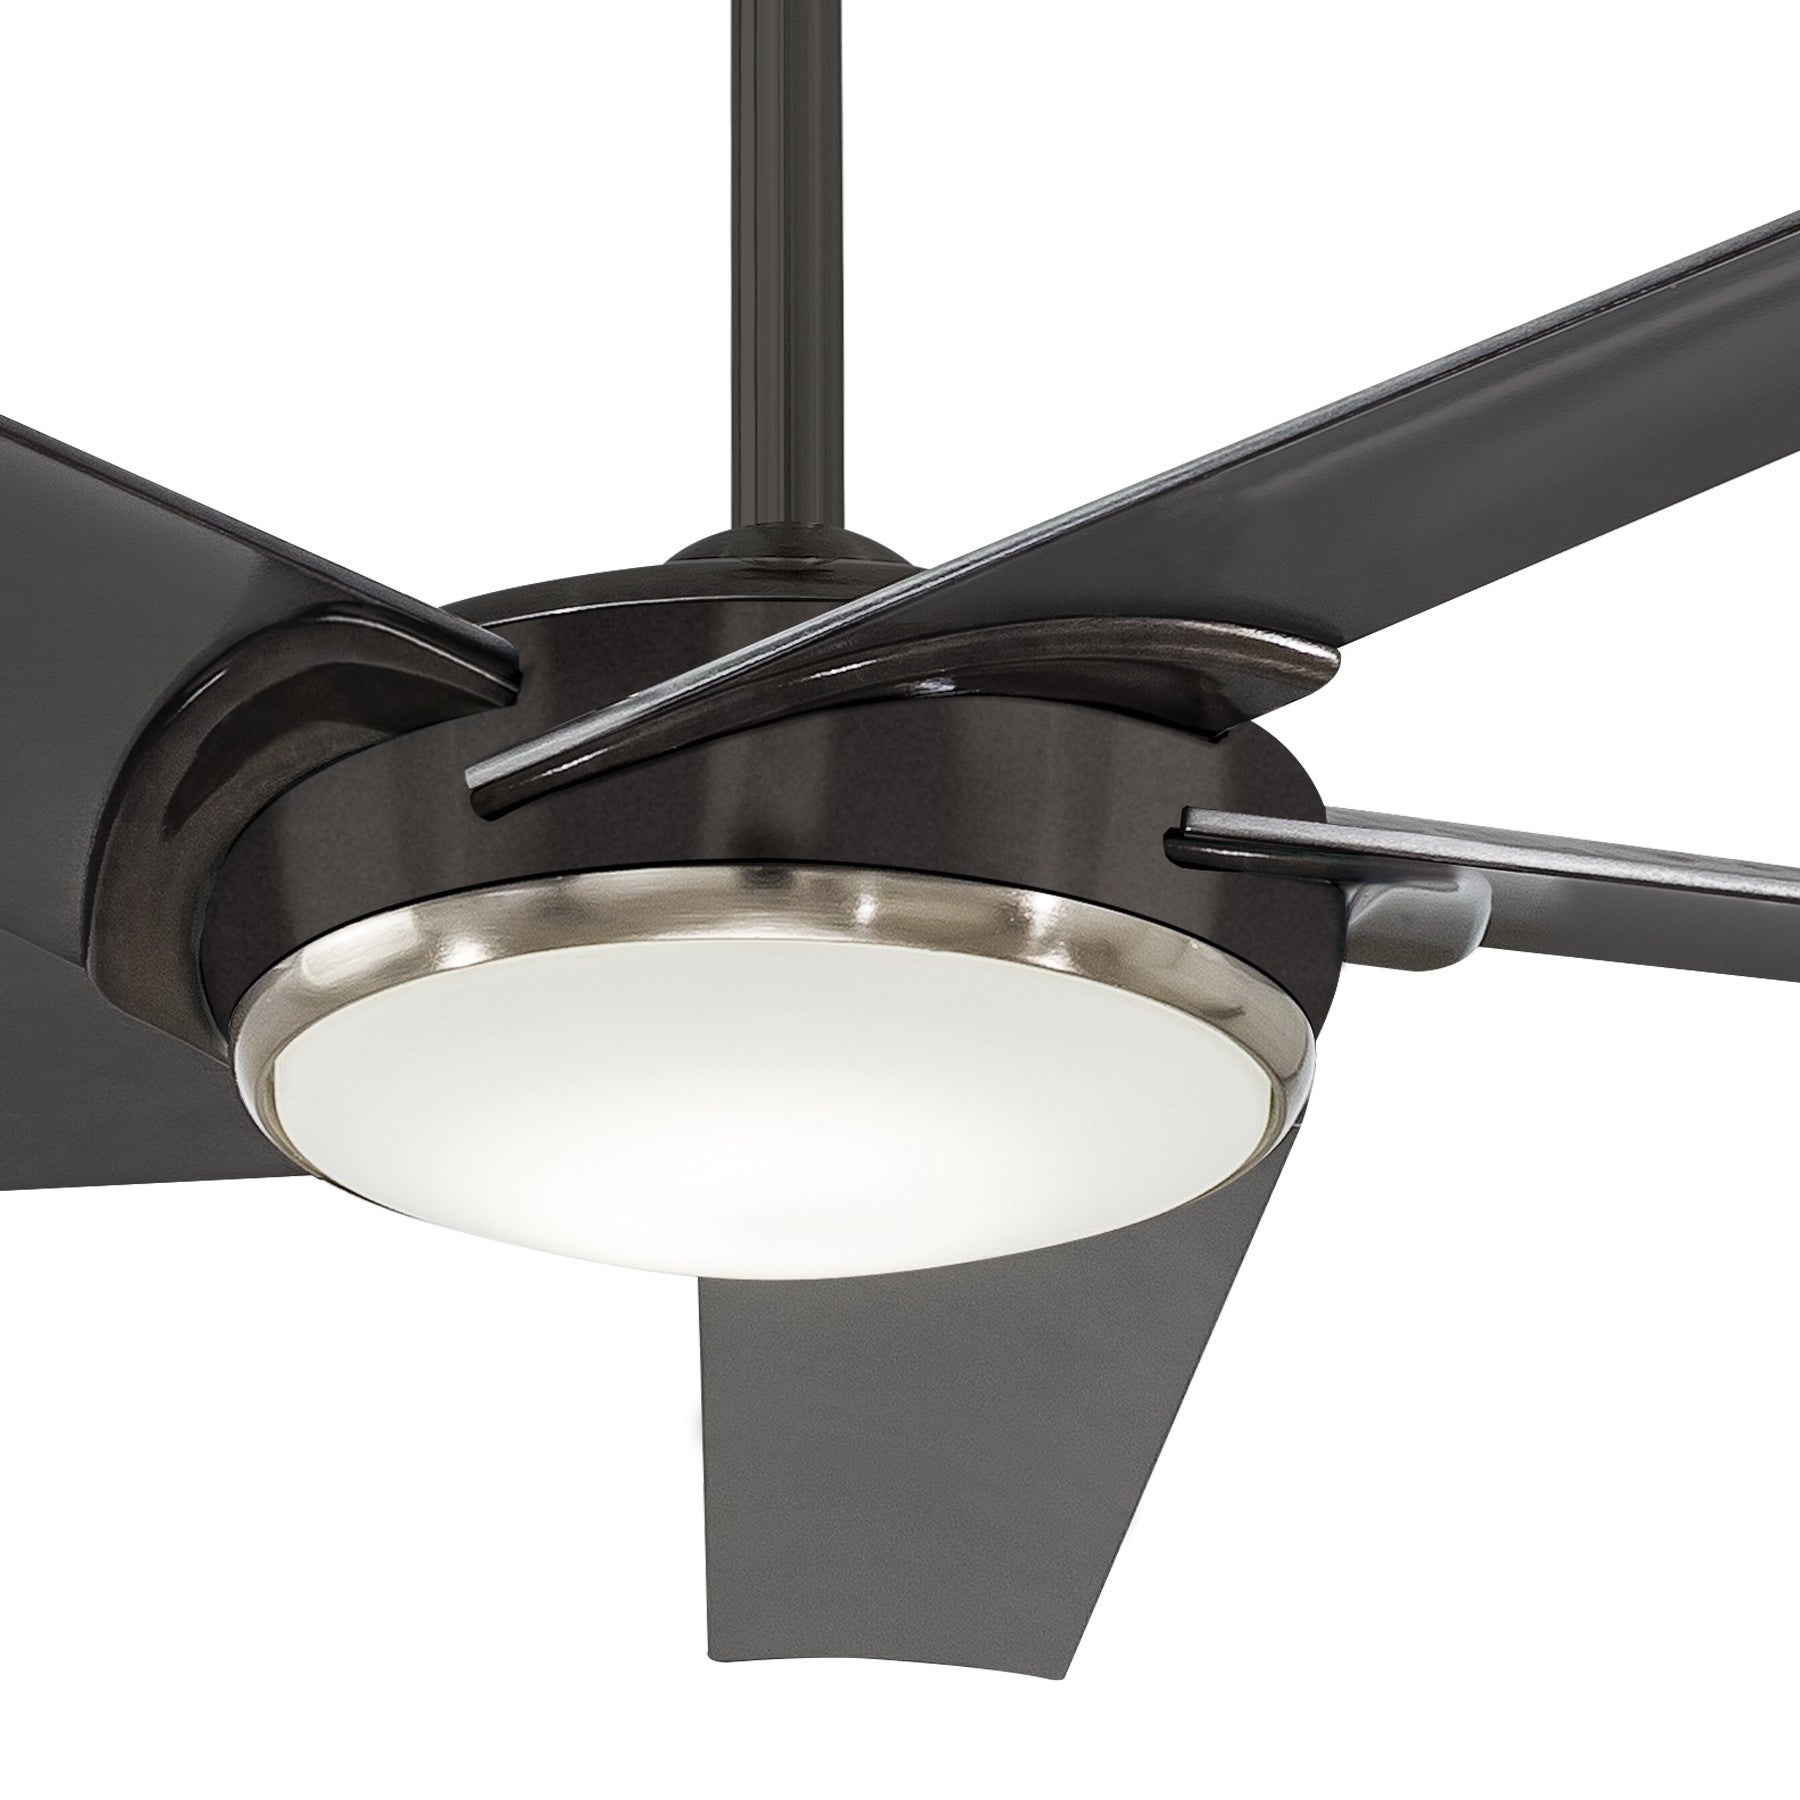 Raptor 60 Inch Ceiling Fan With Led In Gun Metal Finish W/gun Metal Blades With Recent Raptor 5 Blade Ceiling Fans (View 6 of 20)